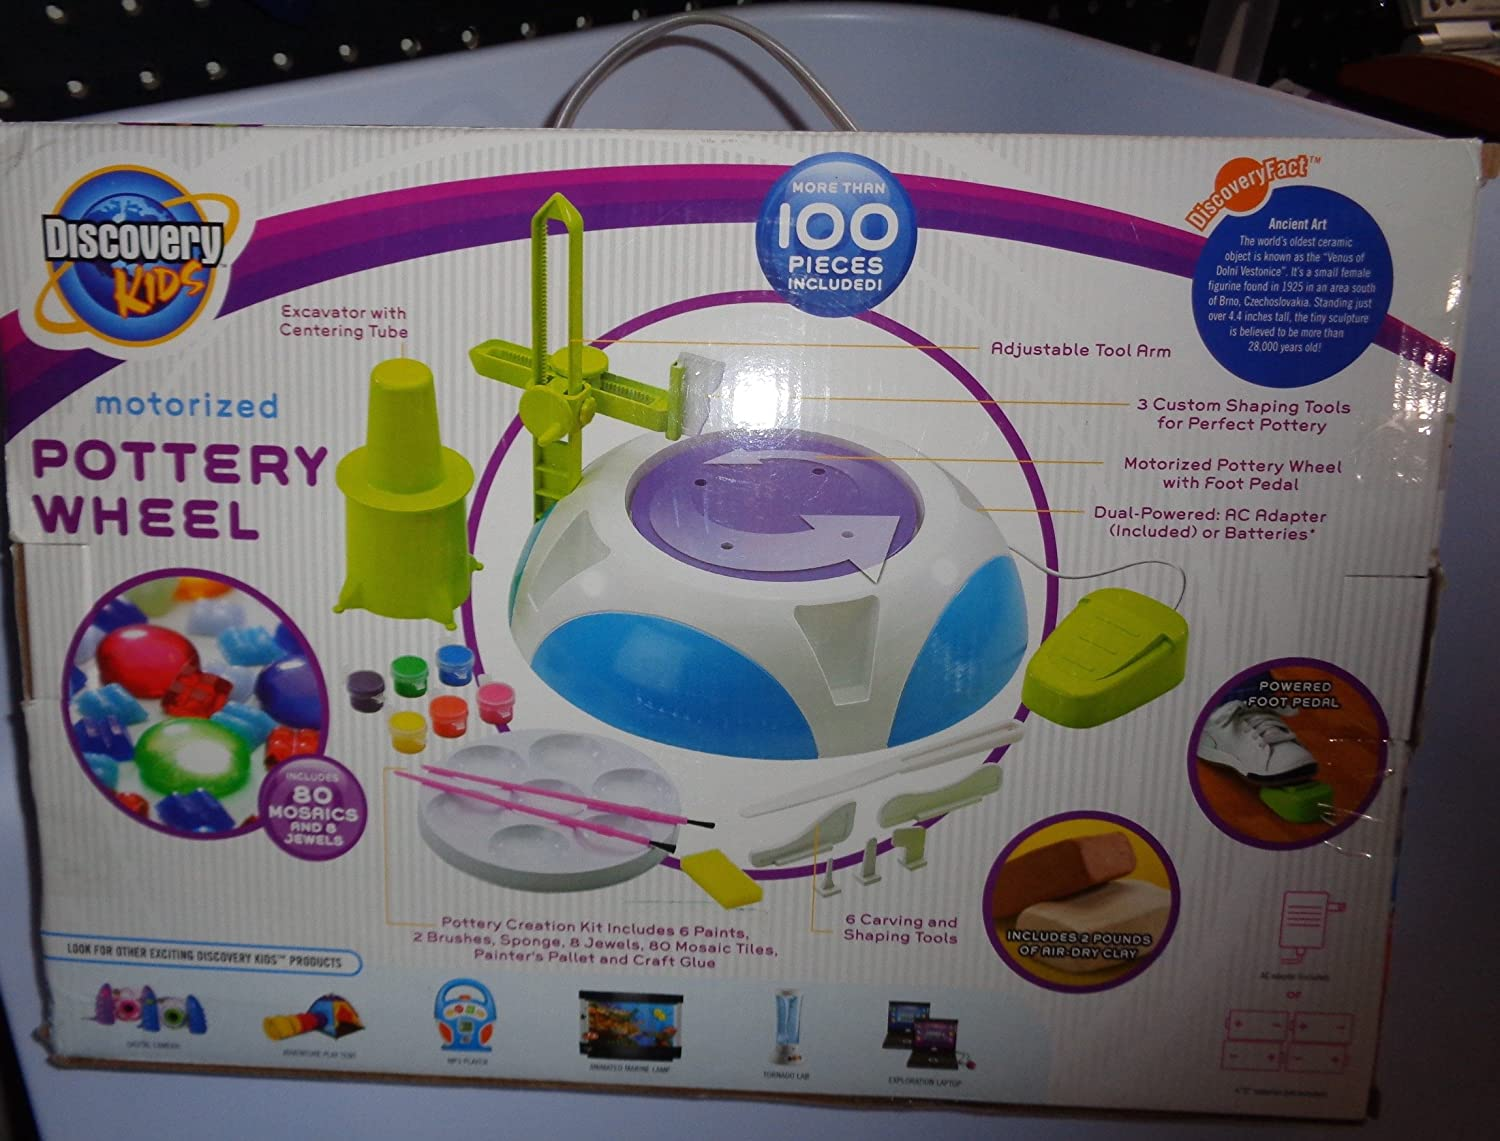 How to make clay toys use various shaping tools to - Amazon Com Discovery Kids Motorized Pottery Wheel With Clay Toys Games